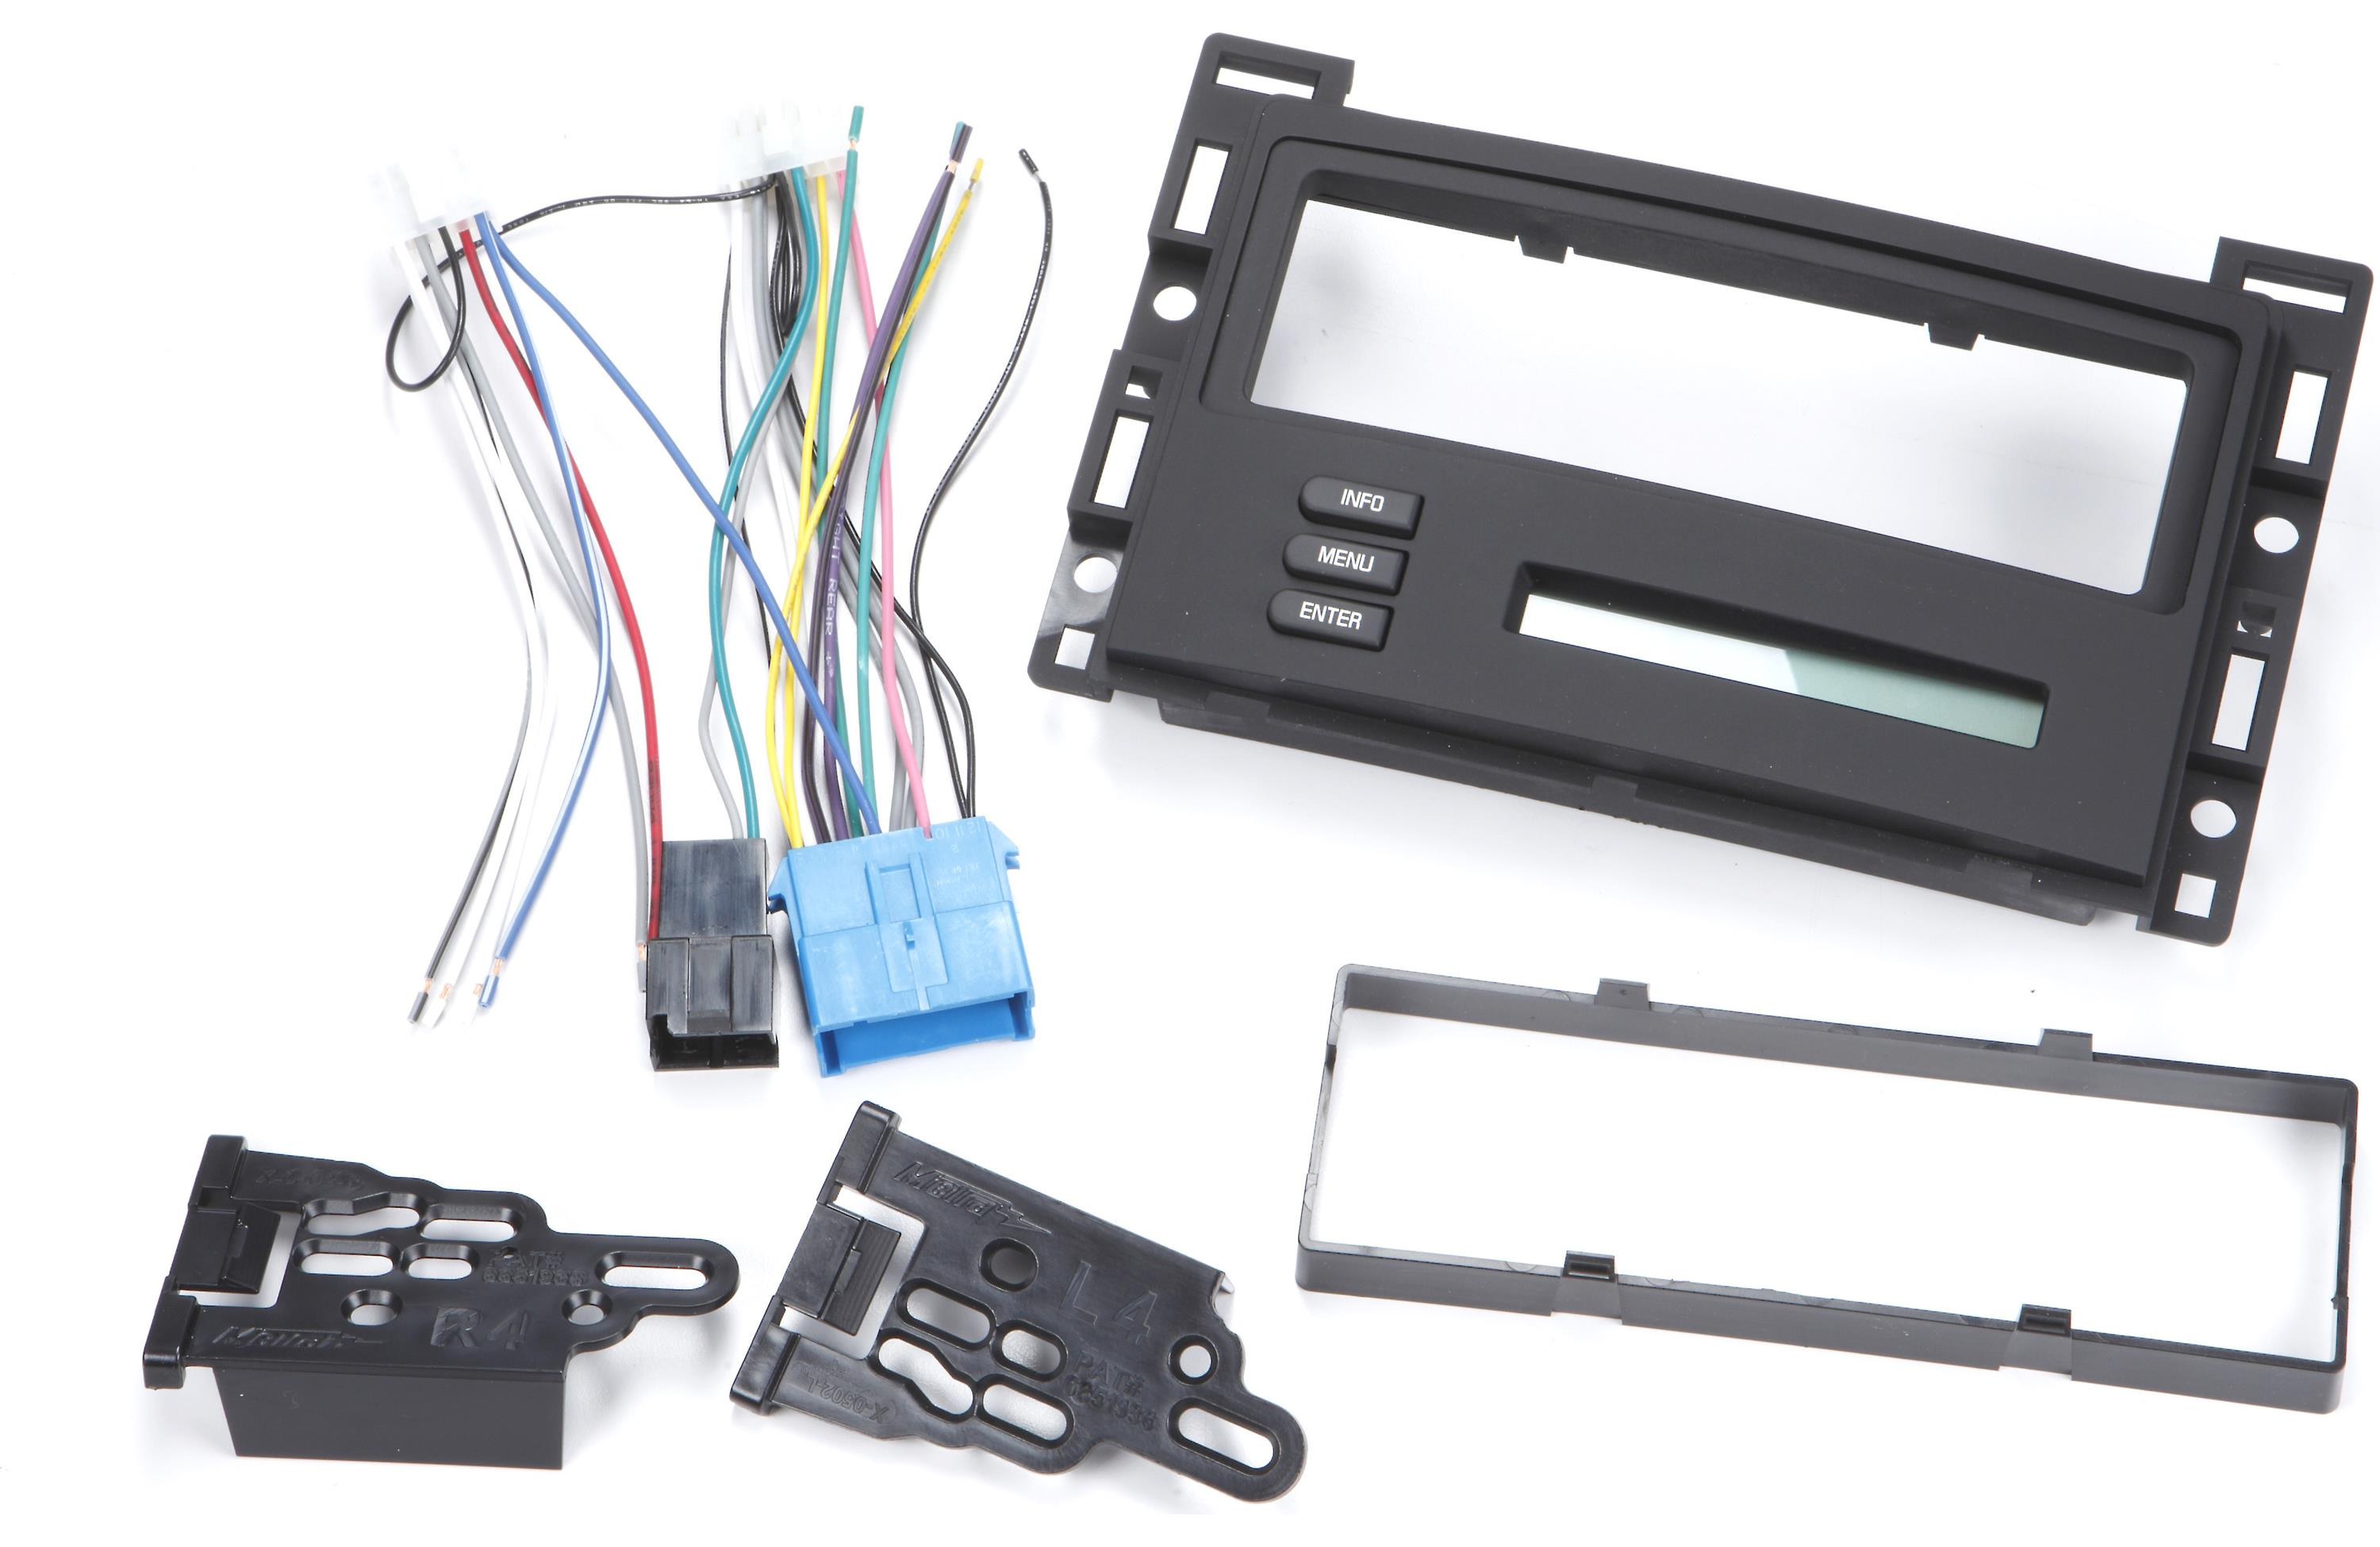 Metra 95 3303b Double Din Stereo Dash Kit For Chevy Malibu Cobalt Wiring Connector Pontiac G6